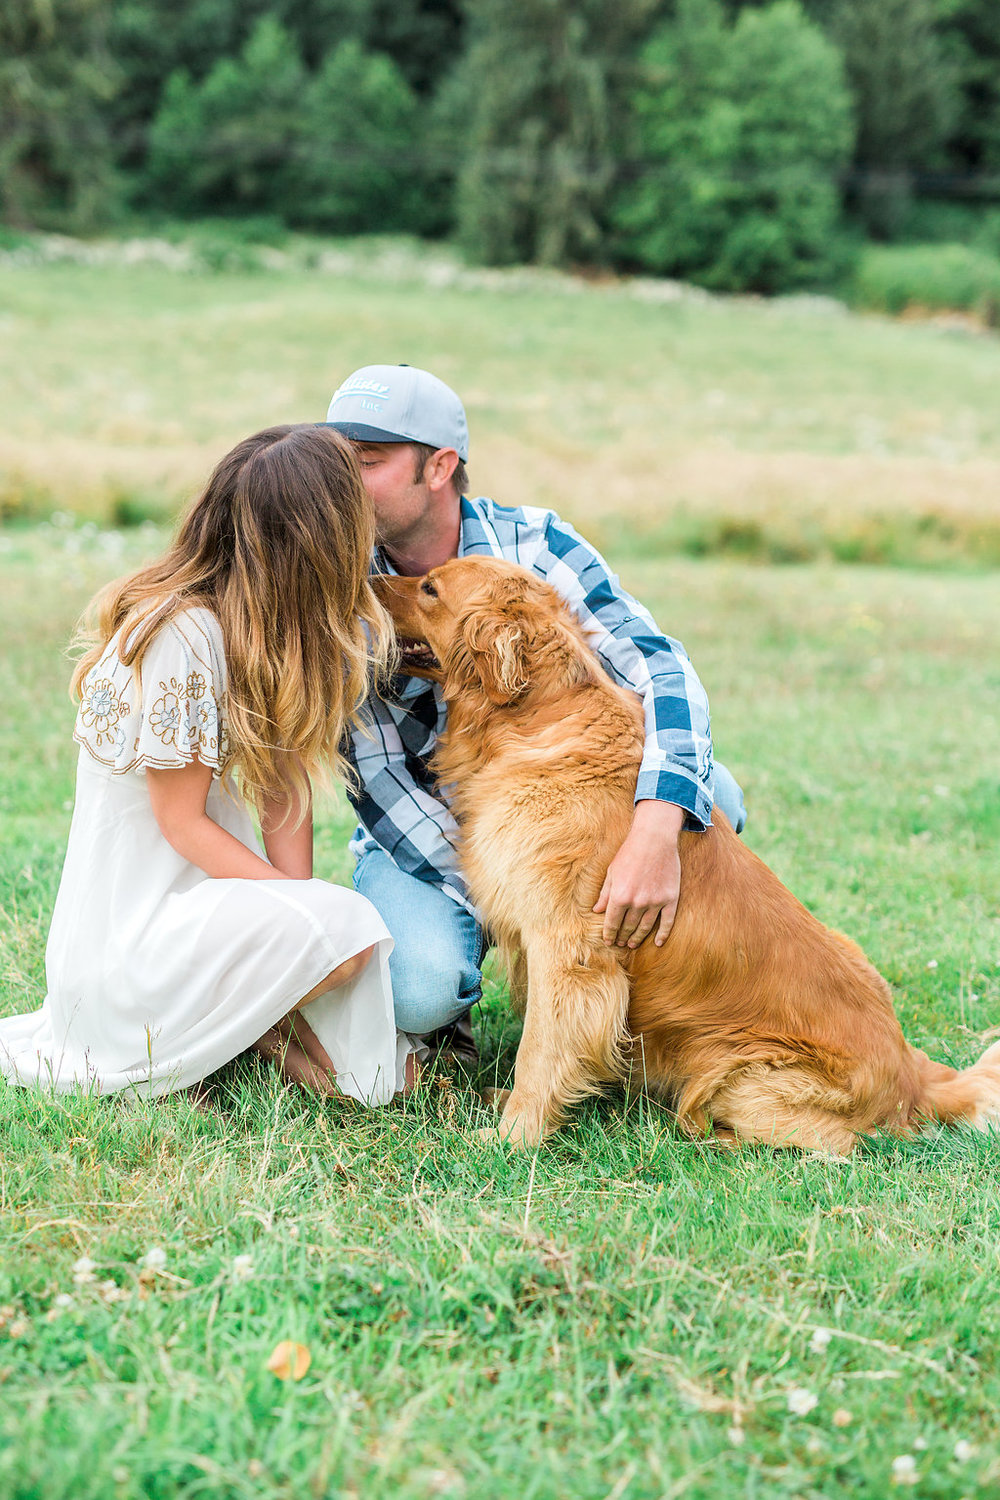 Beautiful outdoor engagement session | What to wear | Photo Inspiration | Engagement session | Portrait | White | Detail Shots | Mastin Labs | Engaged | Fuji 400 | Photo Shoot with Dog | Golden Retriever